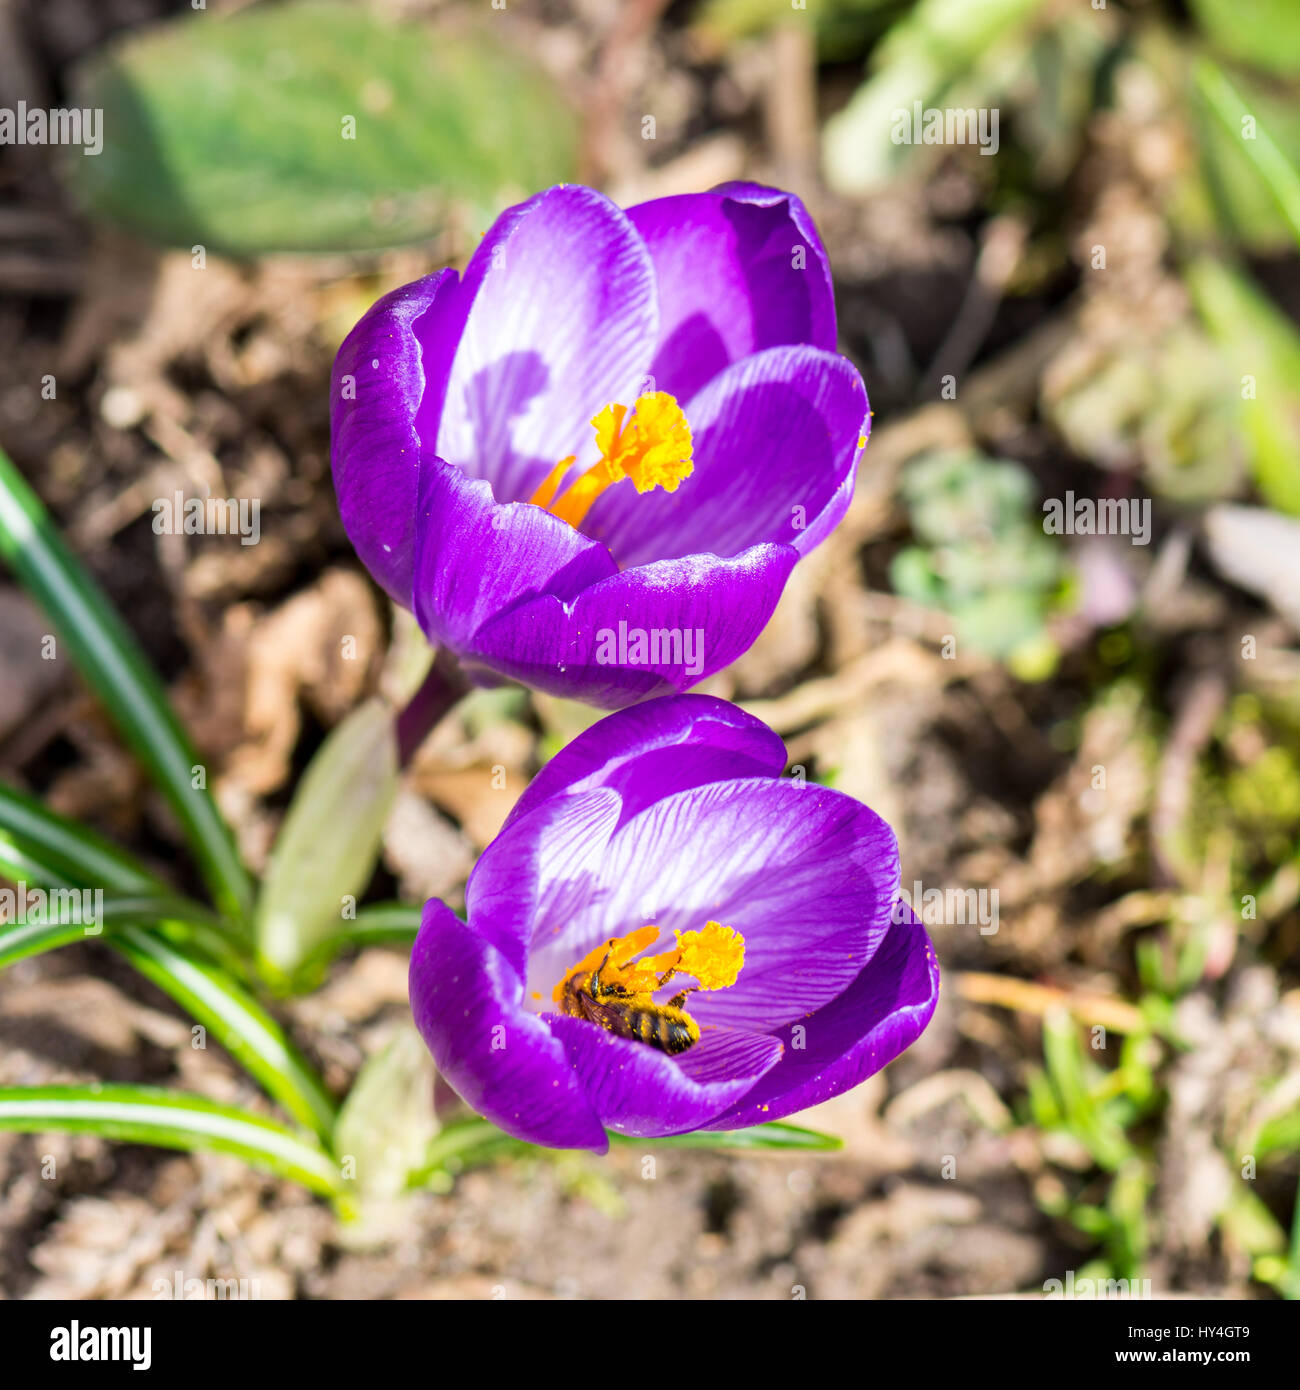 Blooming Spring Crocuses in a sunny spot - Stock Image